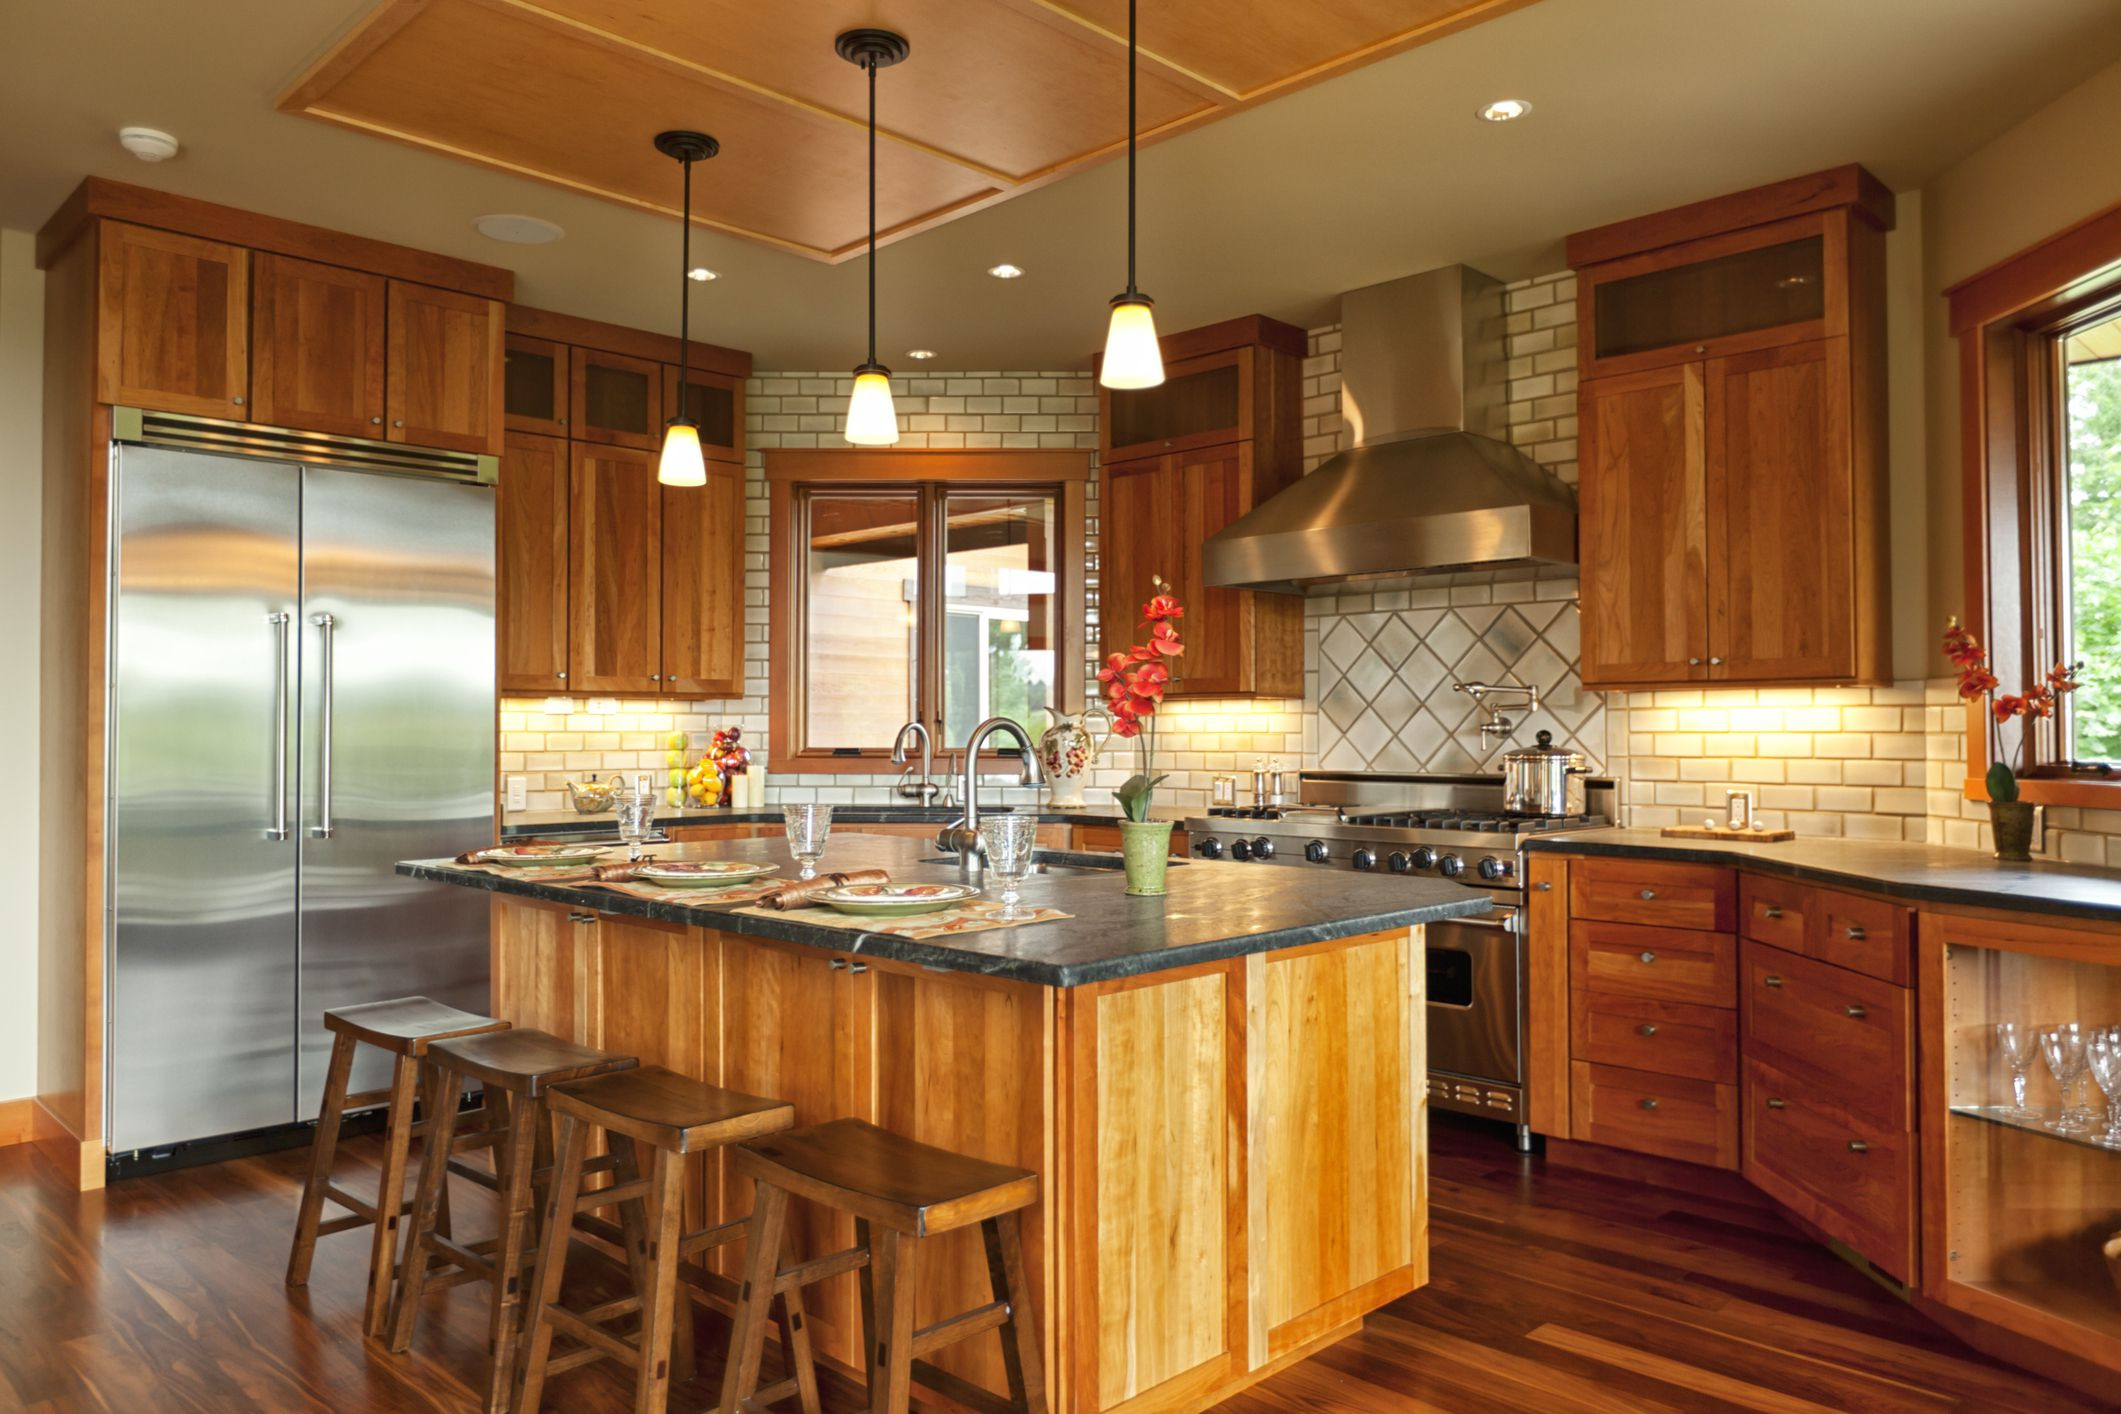 hardwood flooring sq ft price of how much should you budget for home maintenance with gettyimages 155429847 58e3e7bc5f9b58ef7e0fca43